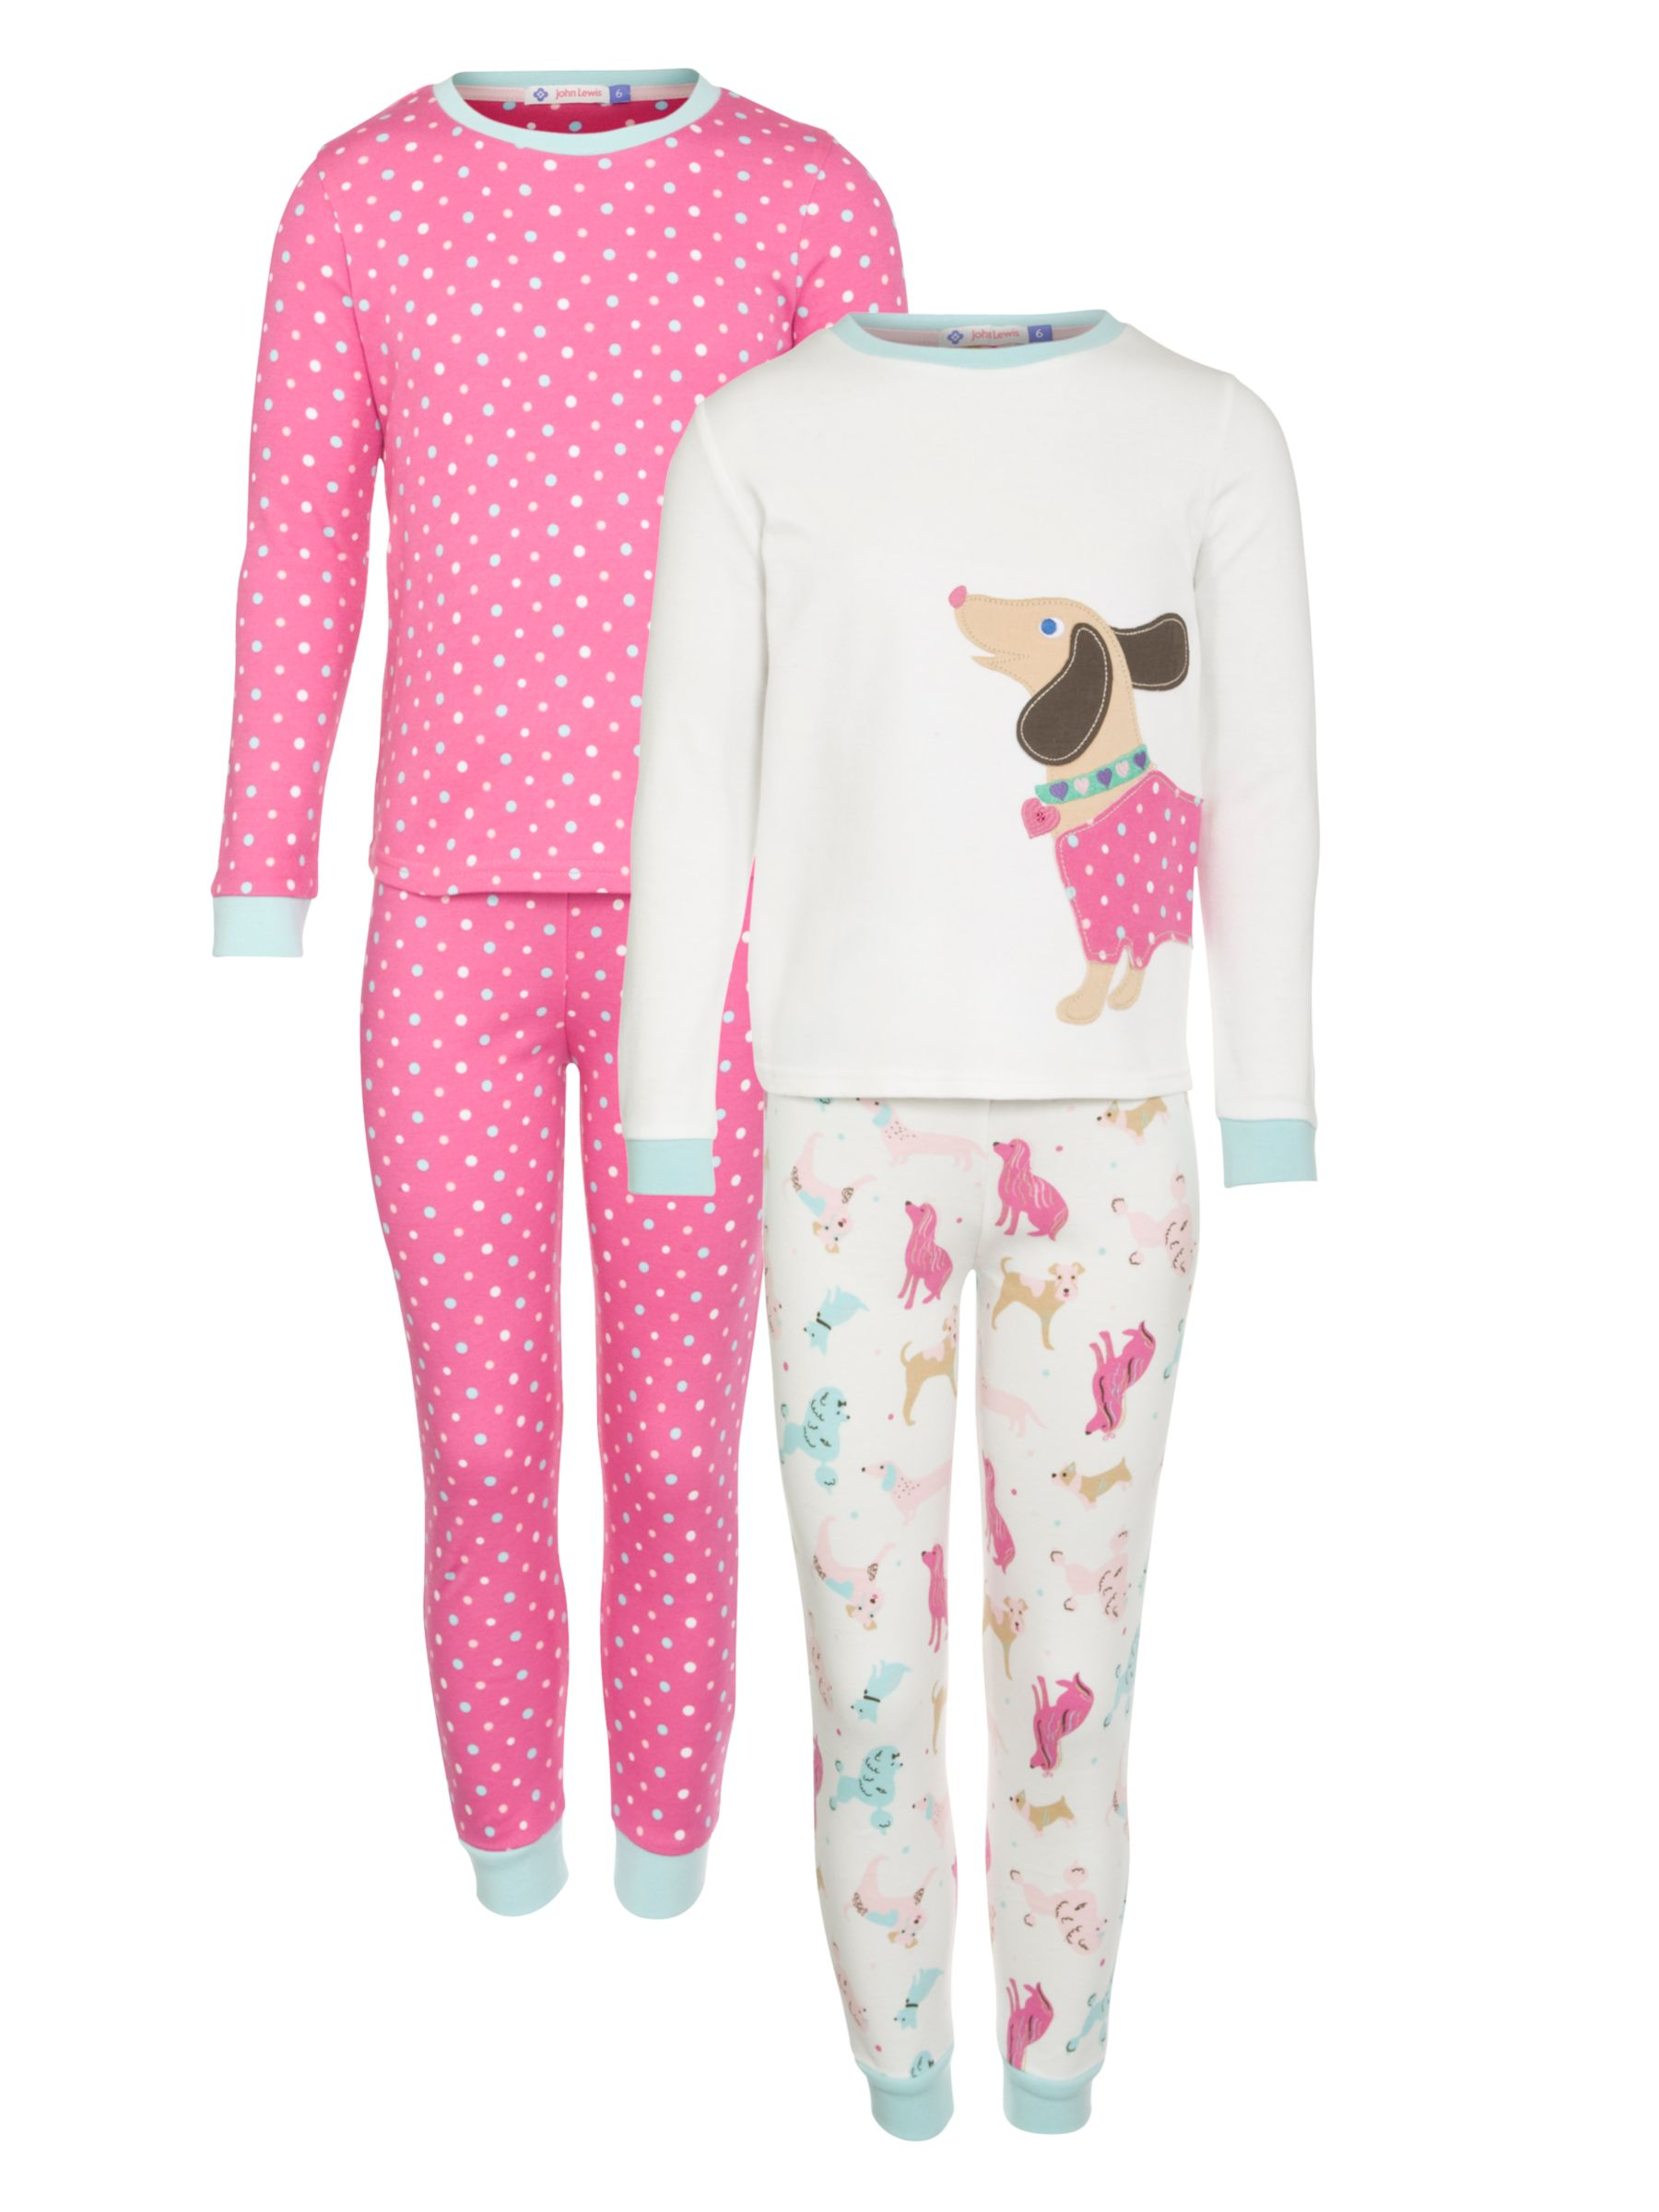 John Lewis Girl Dog and Spot Pyjamas, Pack of 2, Pink/Cream